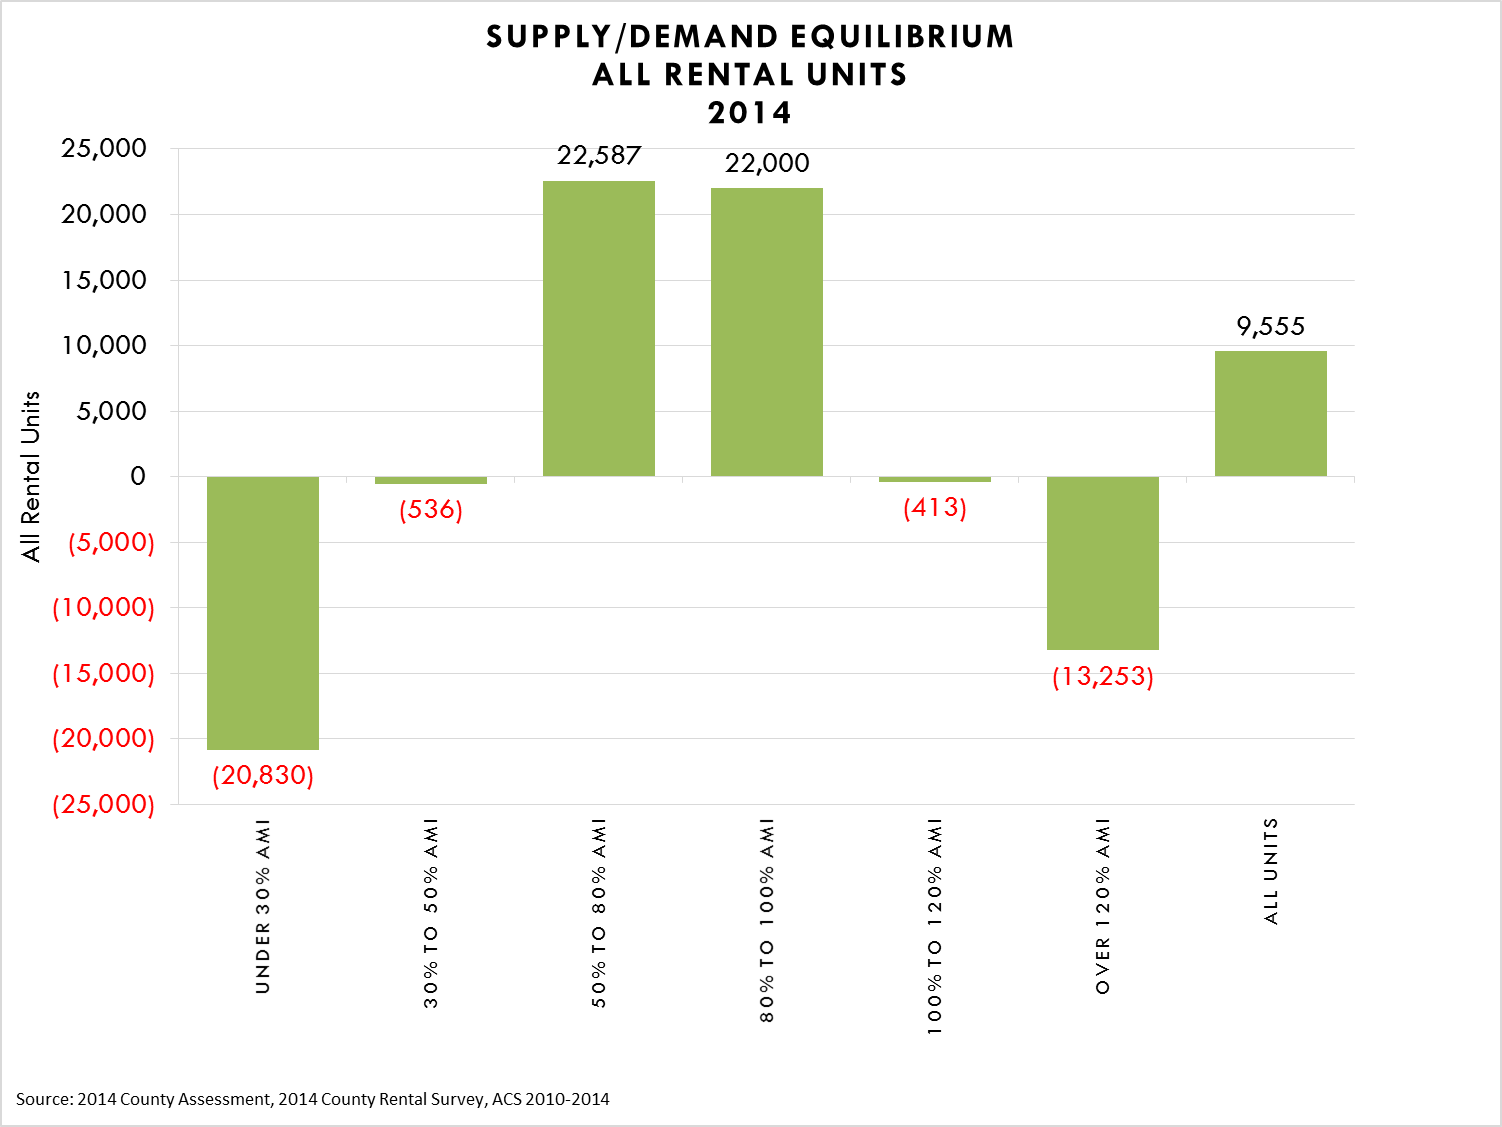 Supply/Demand Equilibrium for All Rental Units